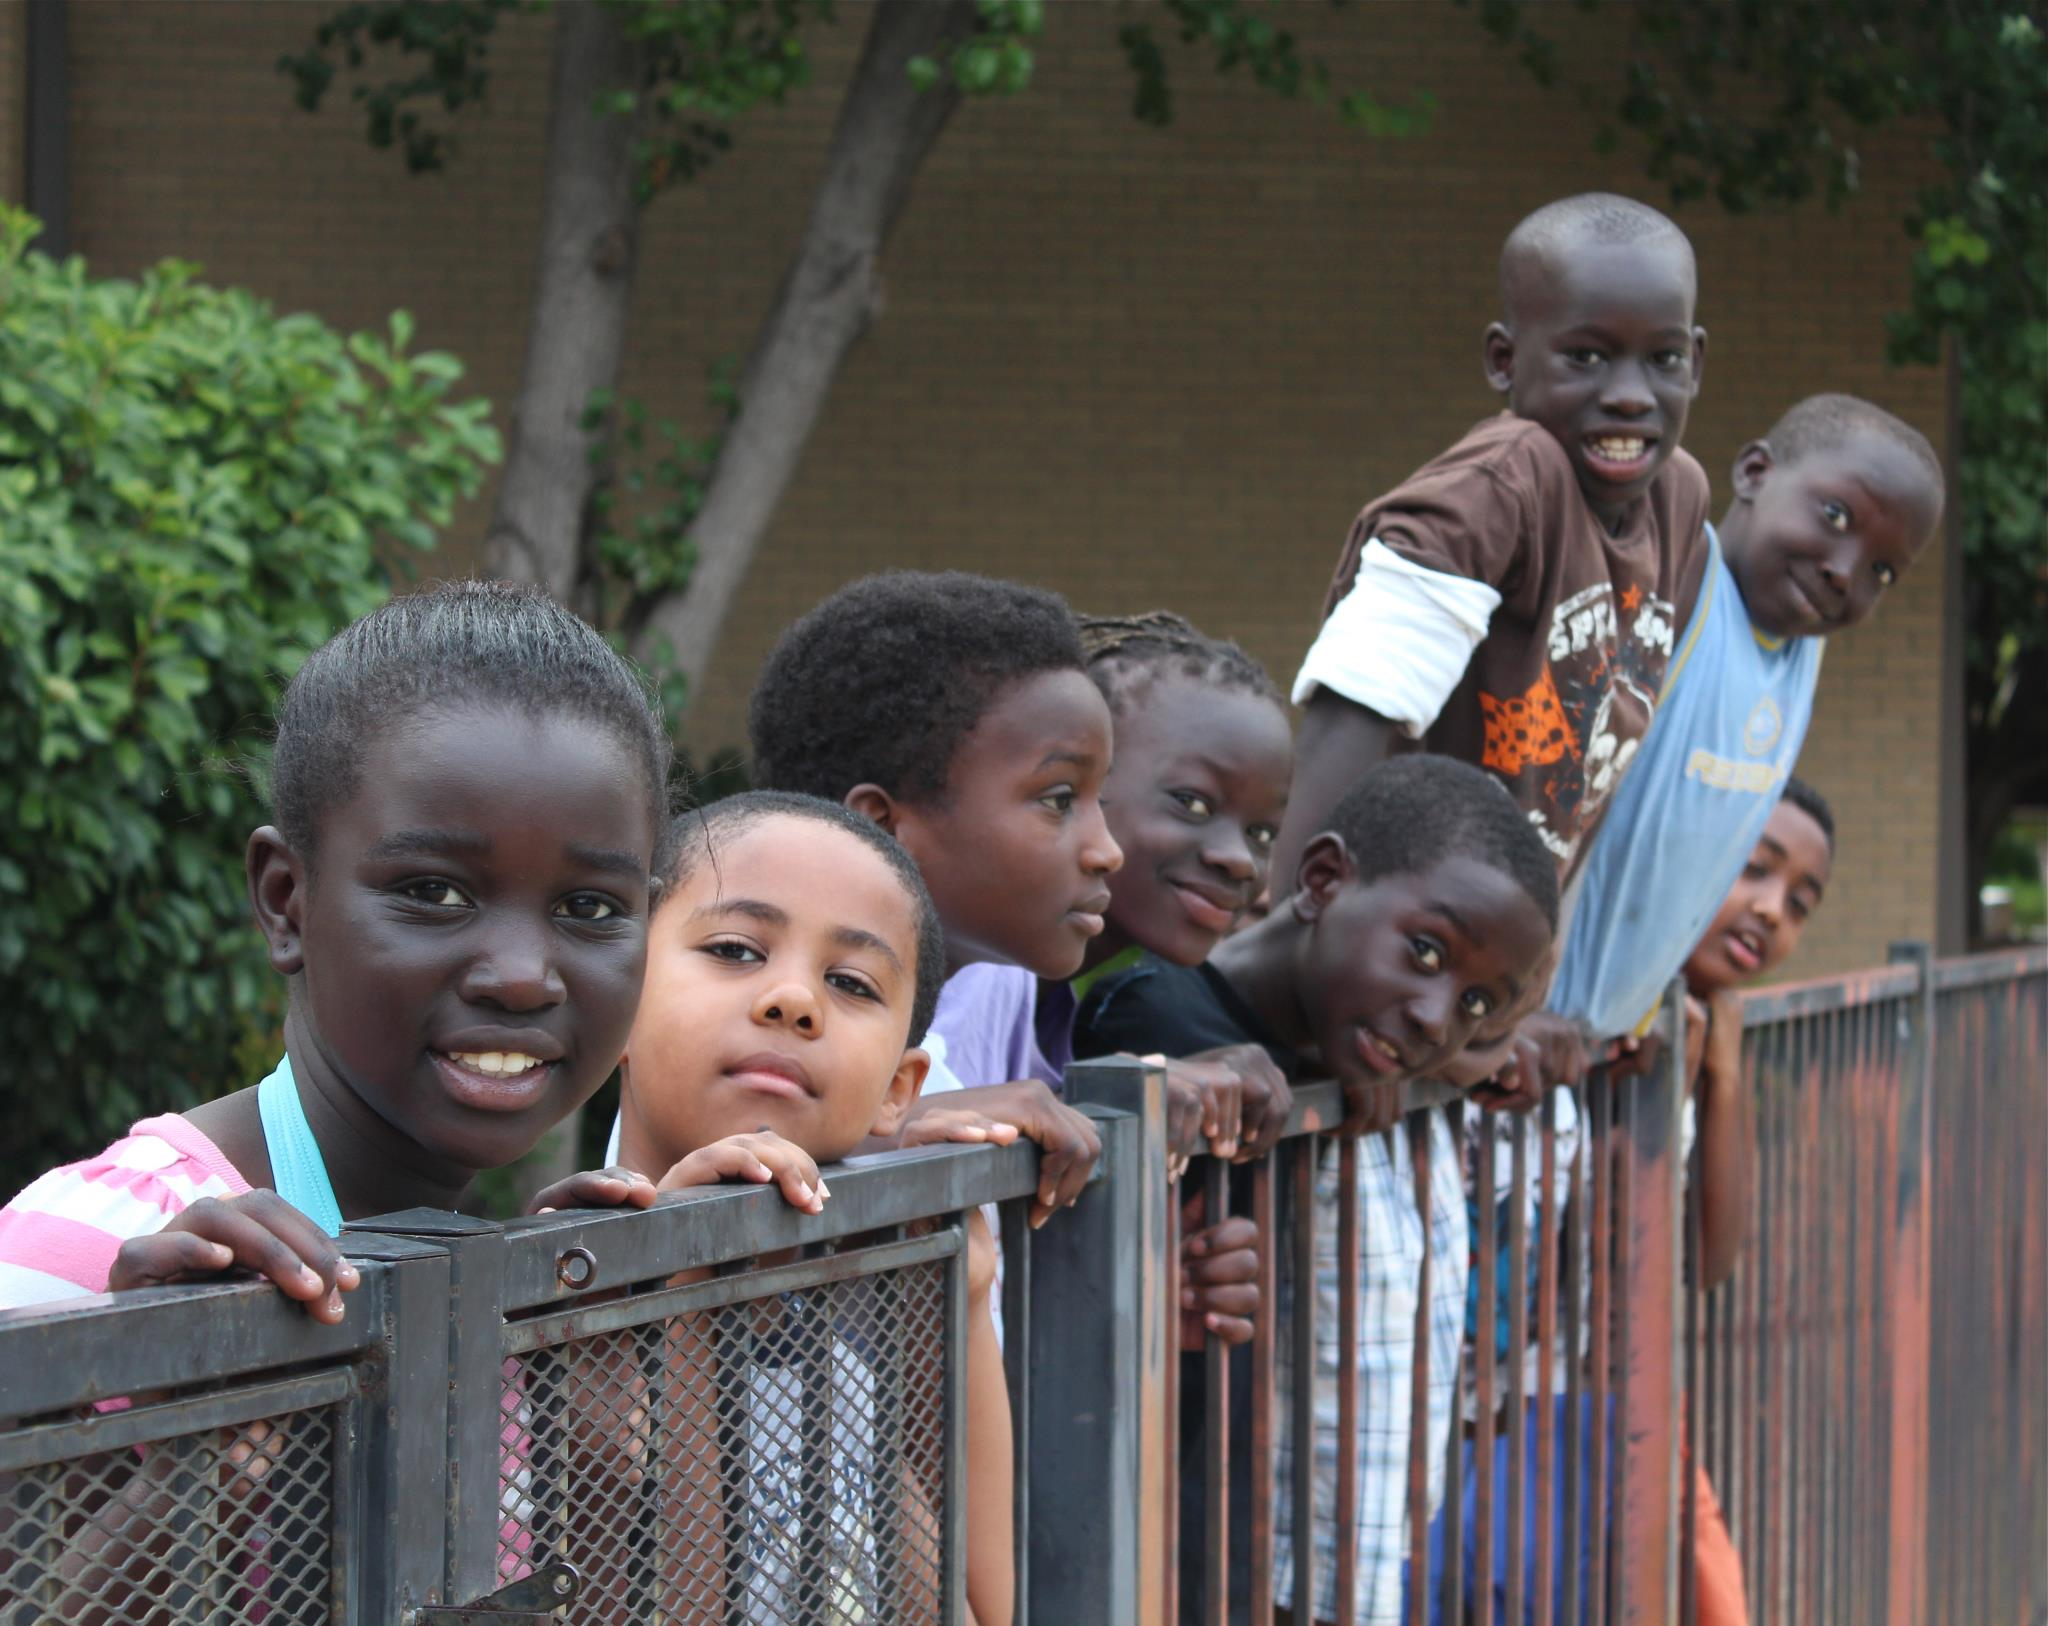 GO Dallas - Help with education, family services, and Gospel presentations to refugee adults and children from Africa, Asia, and the Middle East right here in Texas! Develop meaningful relationships, and share the love of Christ.July 28-Aug 2 & $350